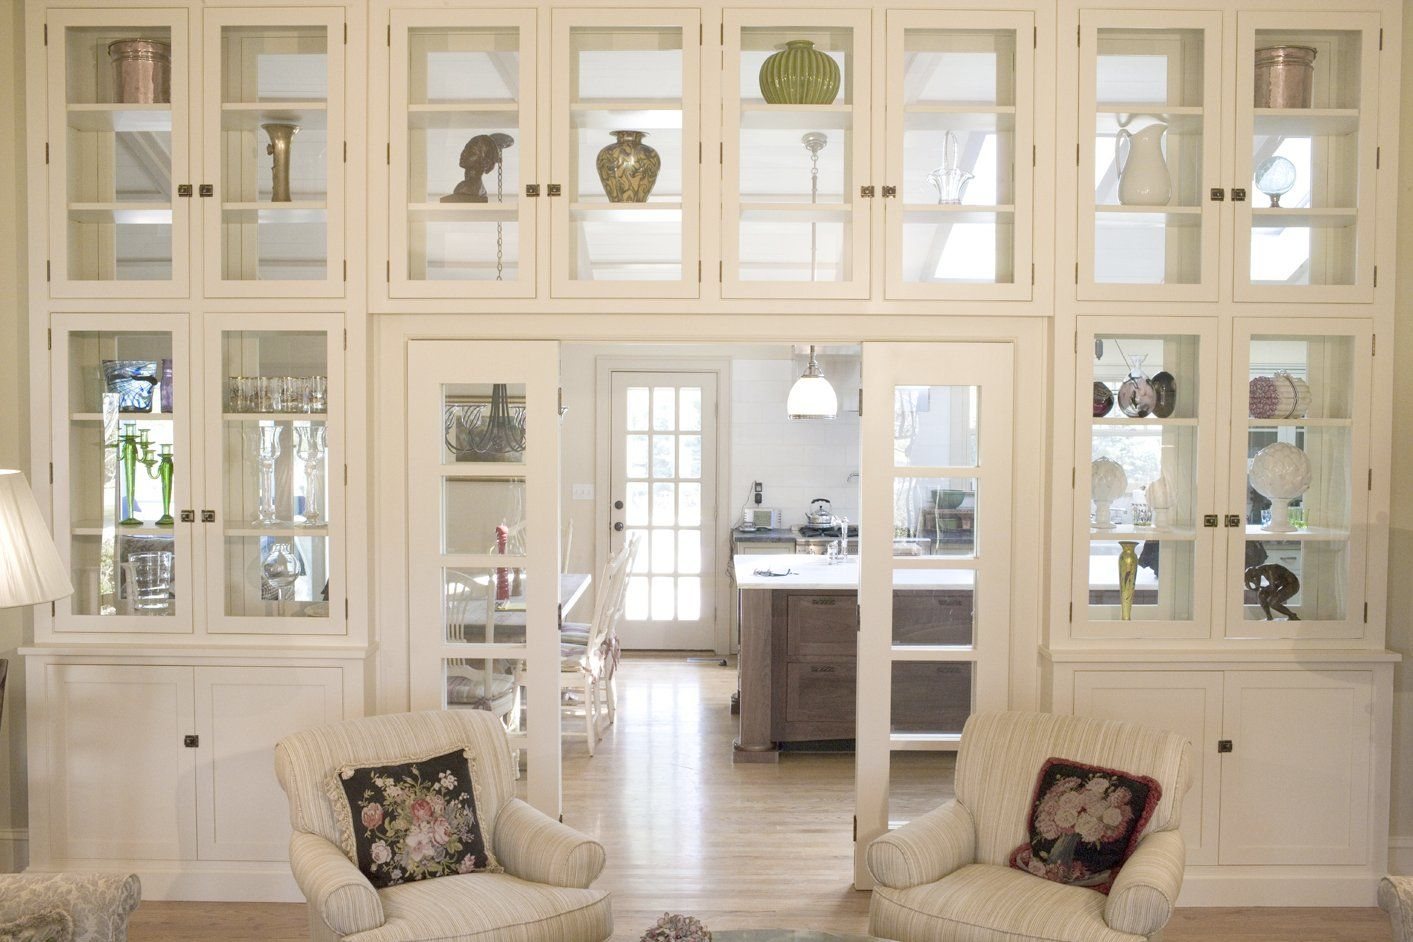 Gorgeous Double Sided Glass Cabinetry Serve As A Room Divider In This Home Love How It Opens Up The Spa Room Divider Hanging Room Dividers Metal Room Divider